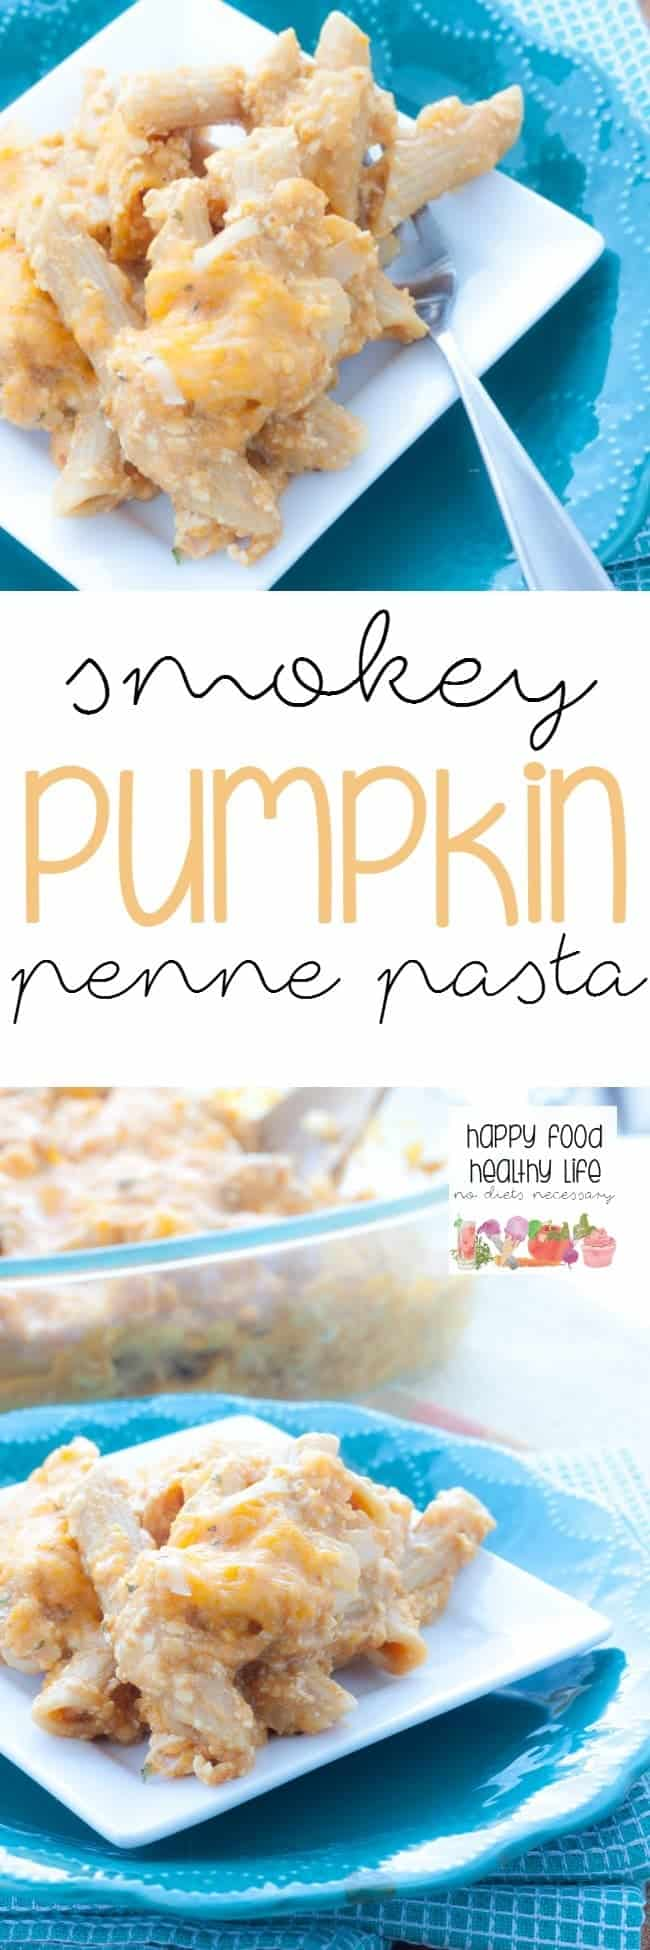 Smokey Pumpkin Penne Pasta - An easy and healthy weeknight meal that is packed with a ton of flavor but will be on the table in no time!